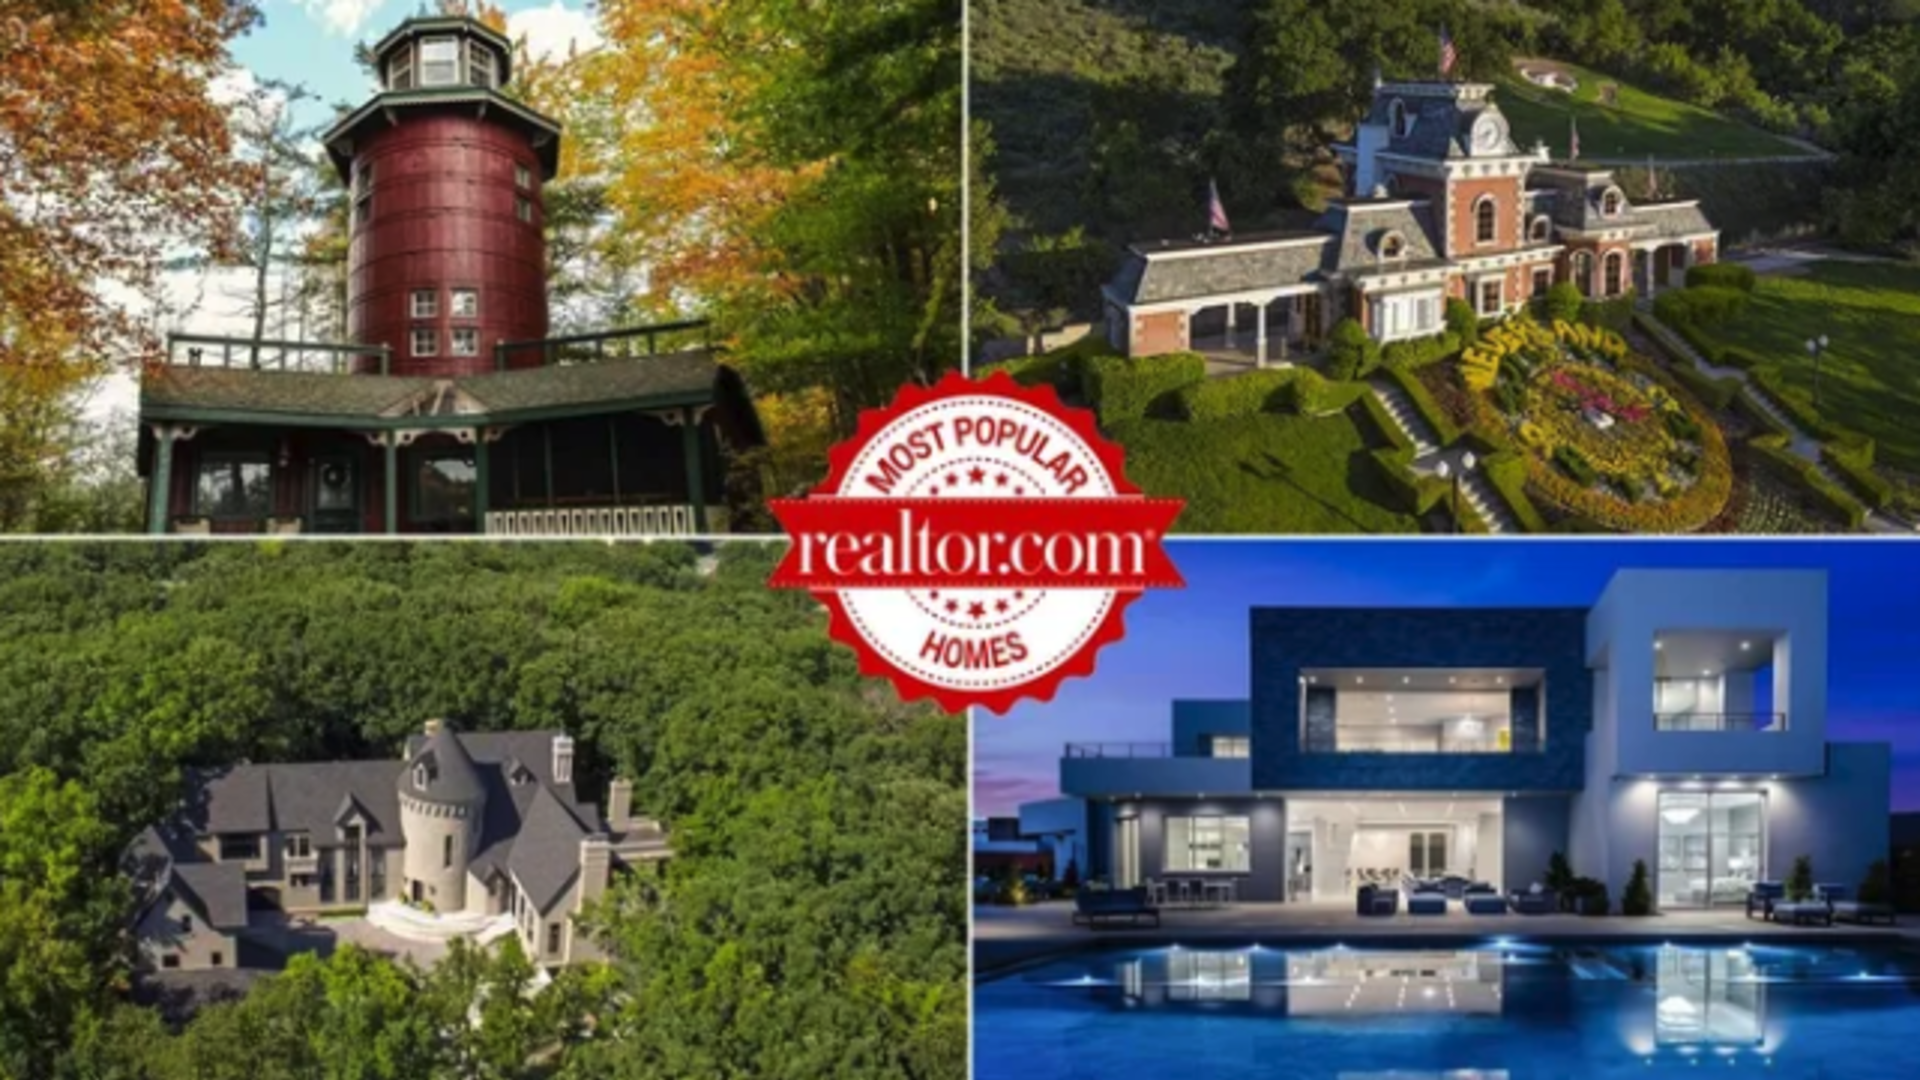 A 45-Foot Rapunzel Tower in the Adirondacks Is This Week's Most Popular Home